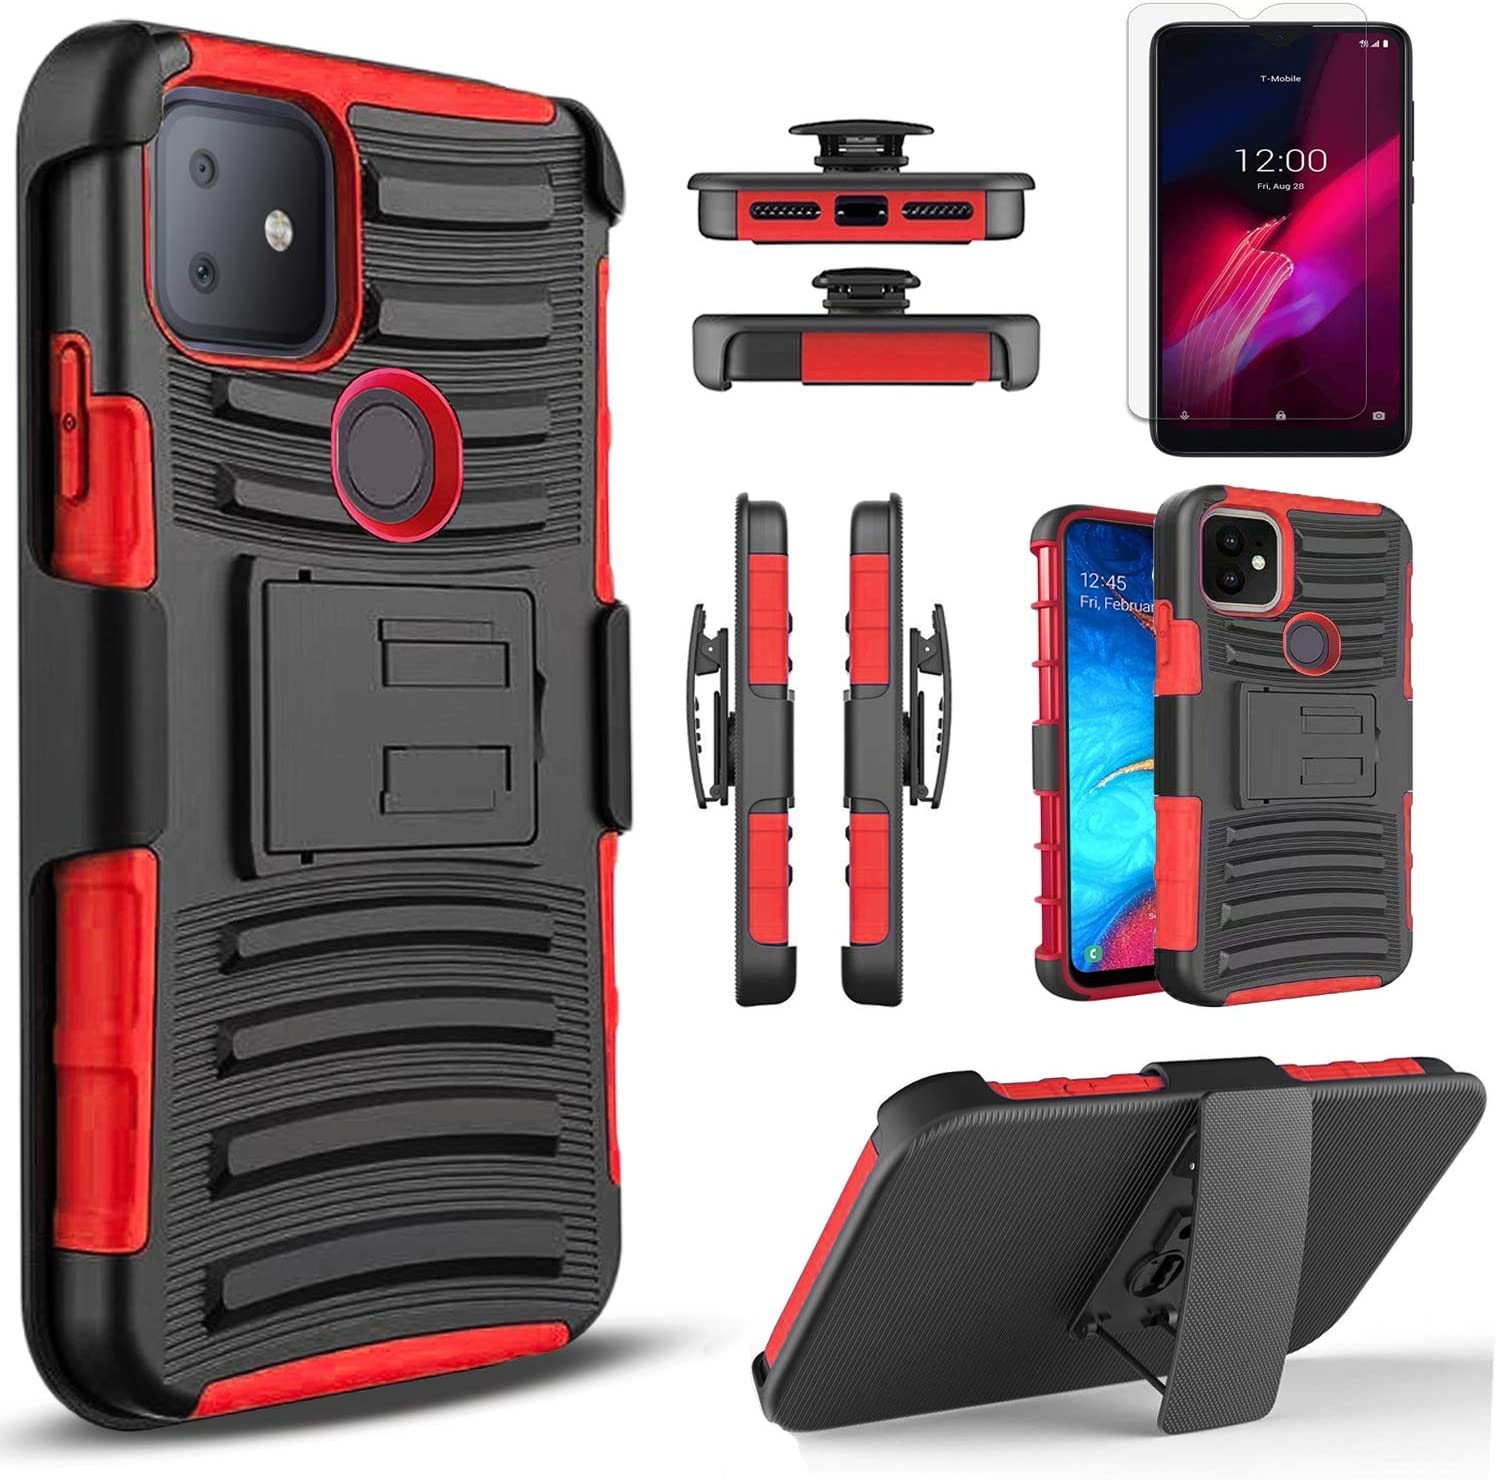 Circlemalls - T-Mobile Revvl 4 Plus Phone Case, [Not Fit Revvl 4] With [Tempered Glass Screen Protector Included], Armor Heavy Duty Kickstand Cover With Belt Clip Holster - Red